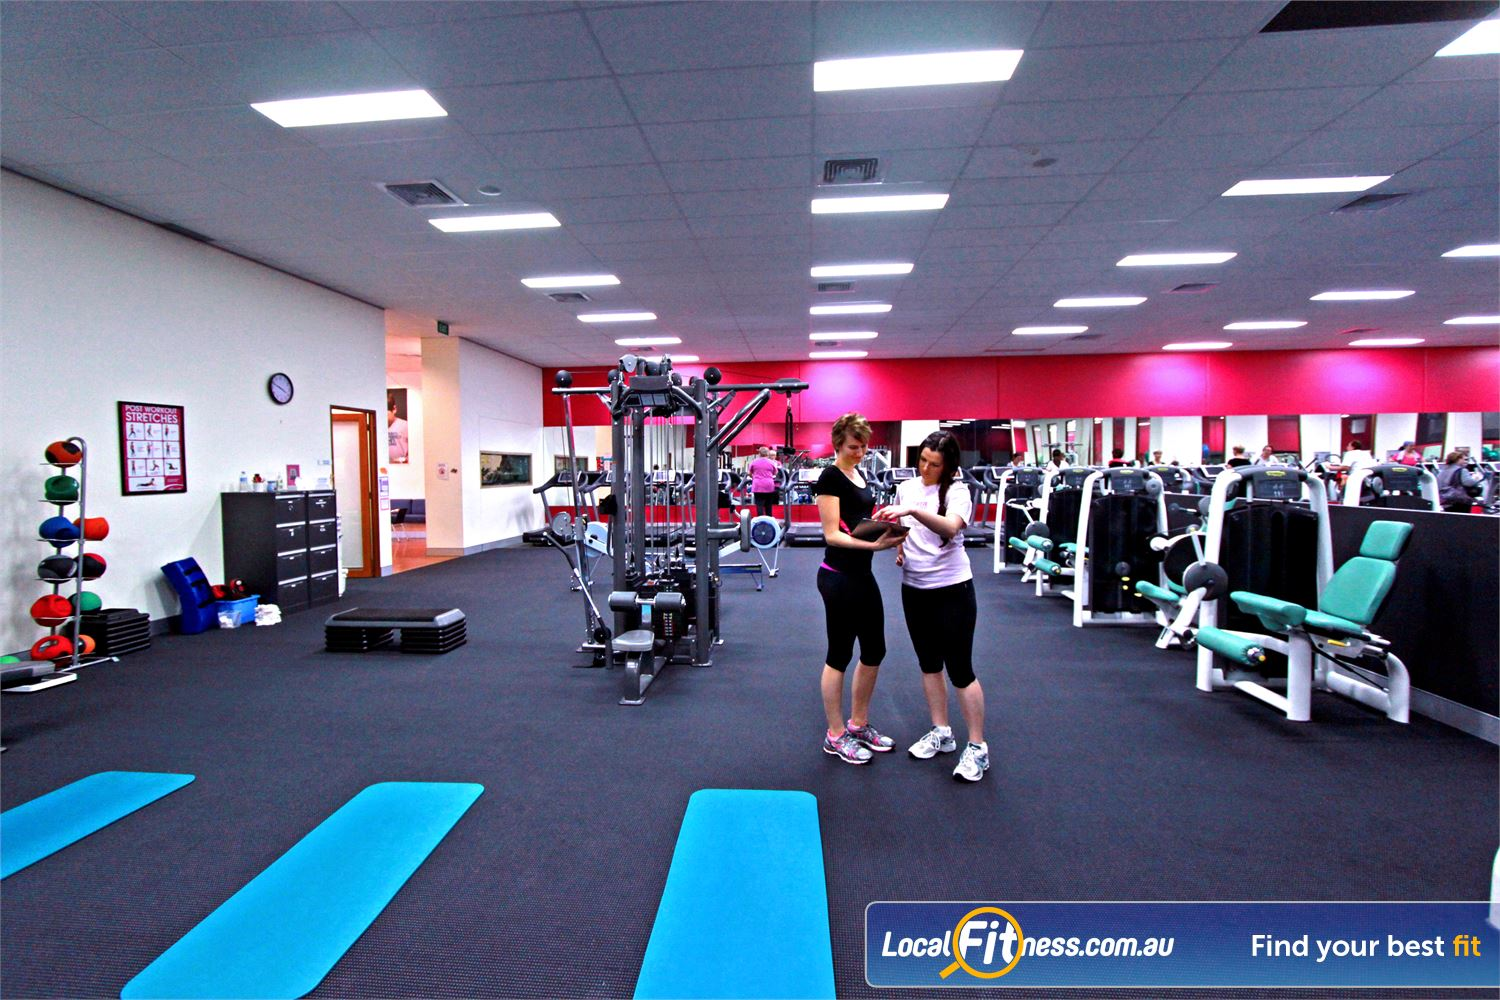 Fernwood Fitness Ferntree Gully Welcome to the purpose built Fernwood Ferntree Gully gym.